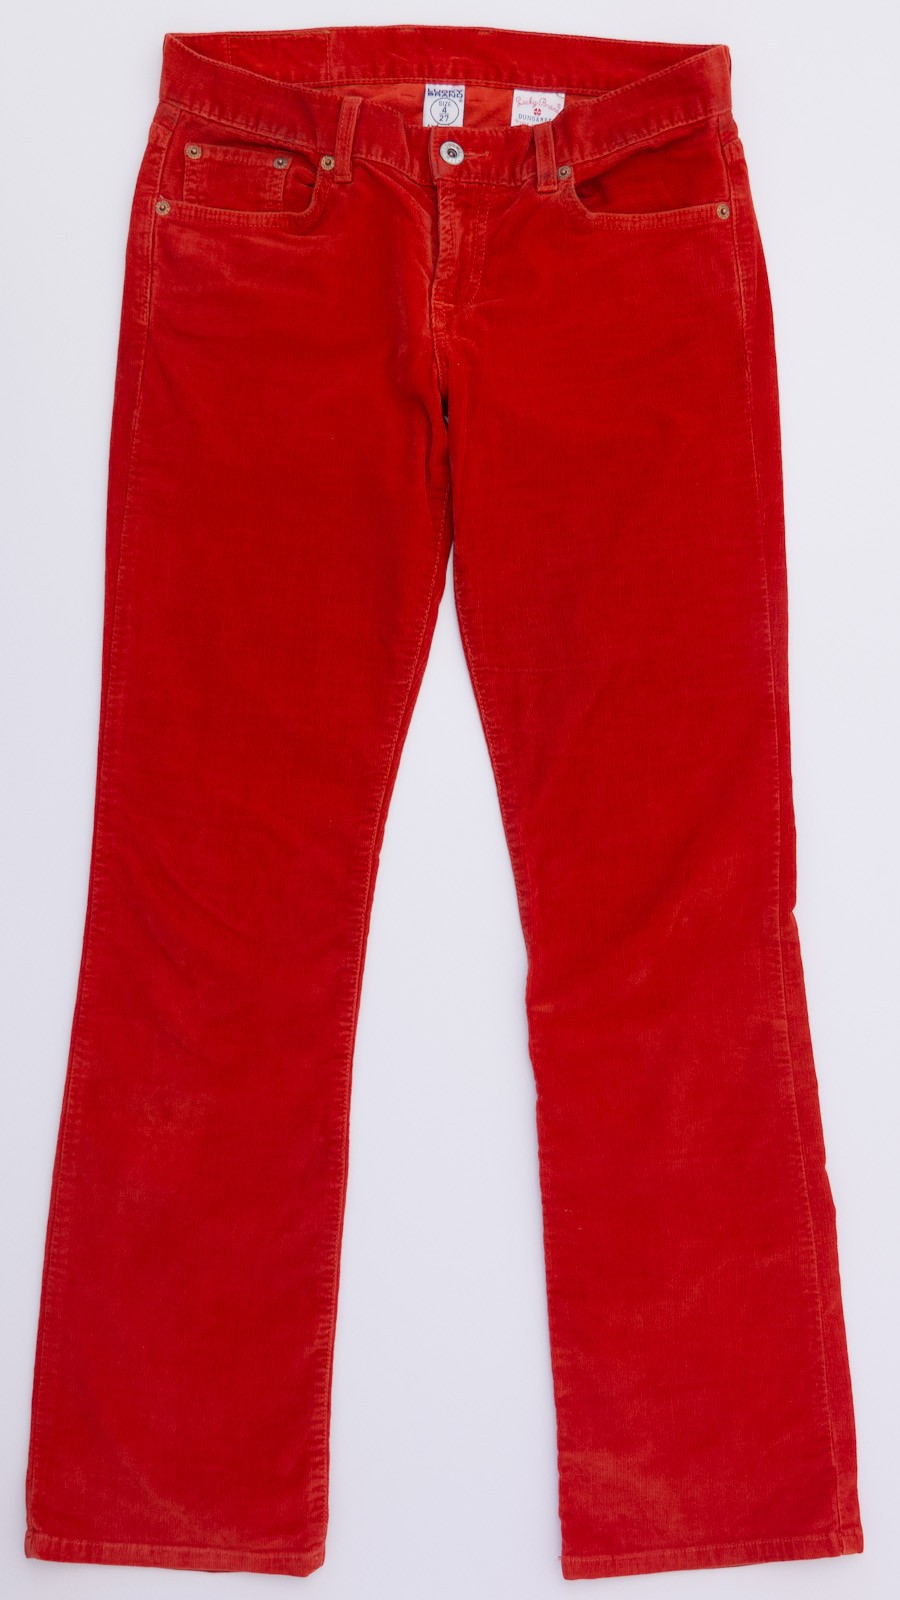 Red Corduroy Pants Women - Fat Pants